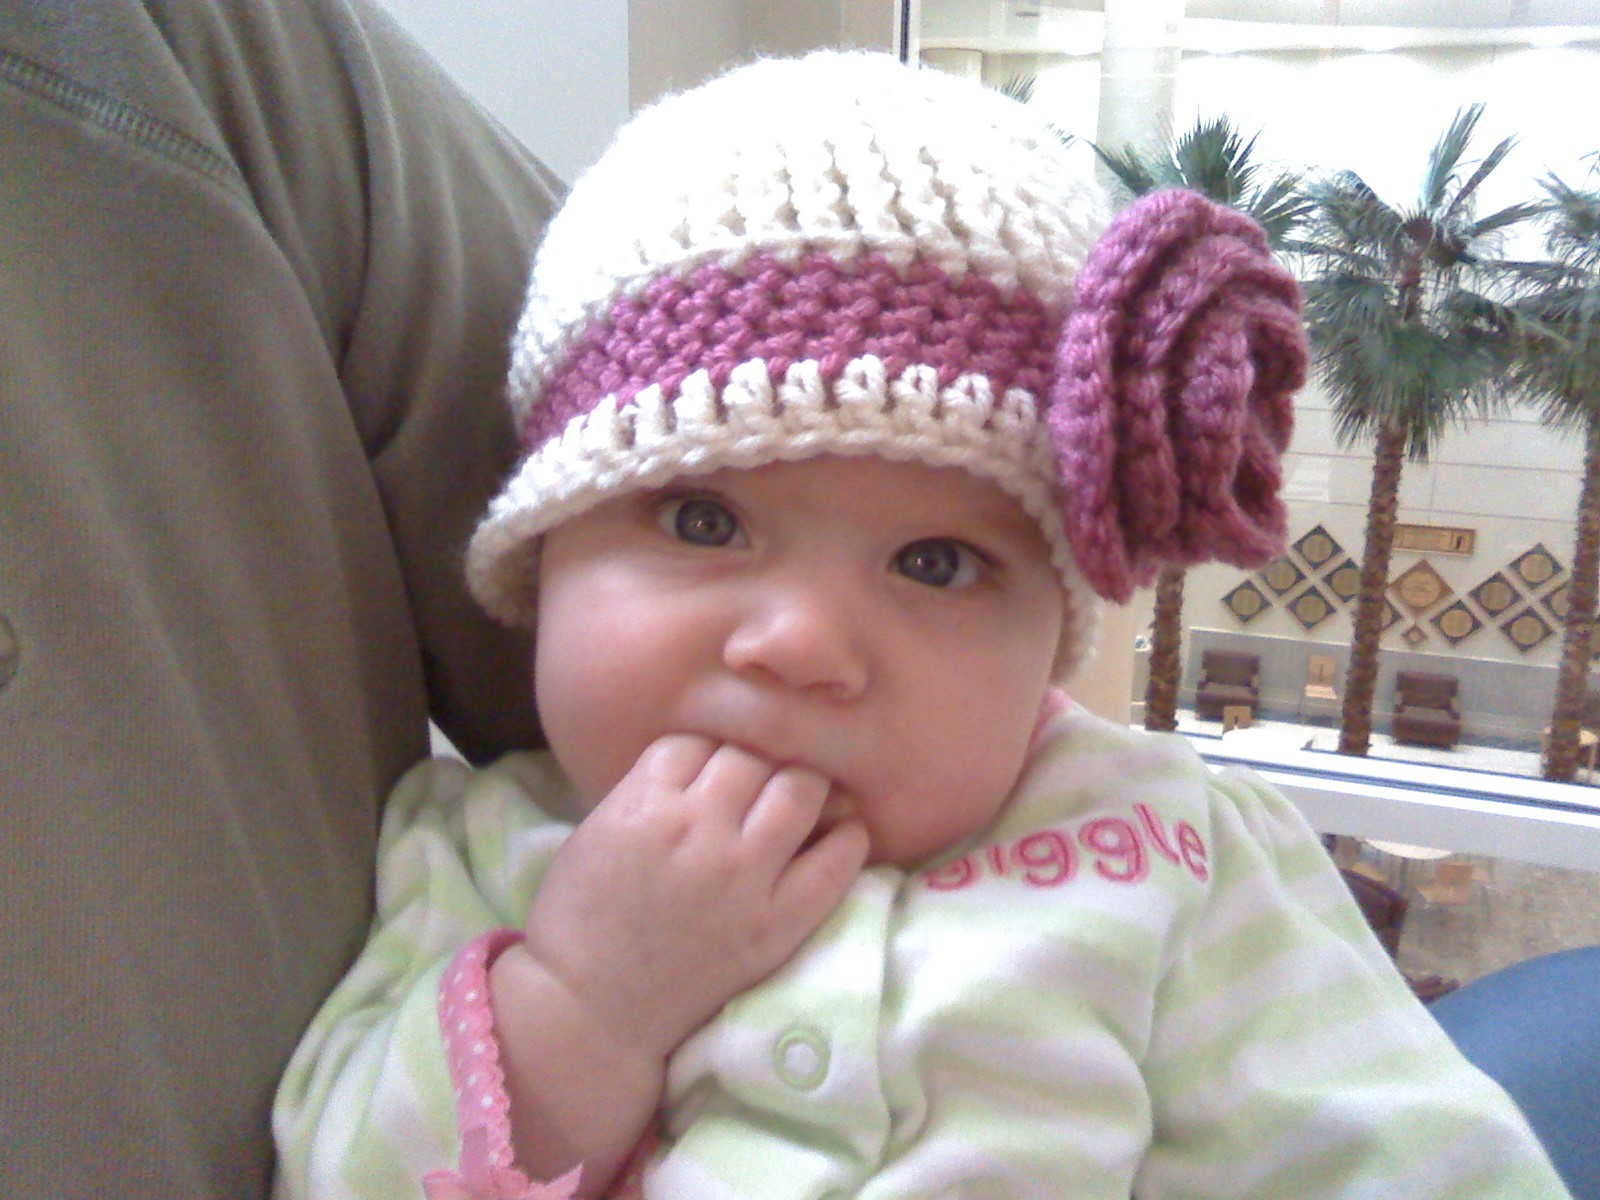 Crochet Girl Hat Unique Pattern Crochet Girls Hat – Easy Crochet Patterns Of Superb 47 Pics Crochet Girl Hat